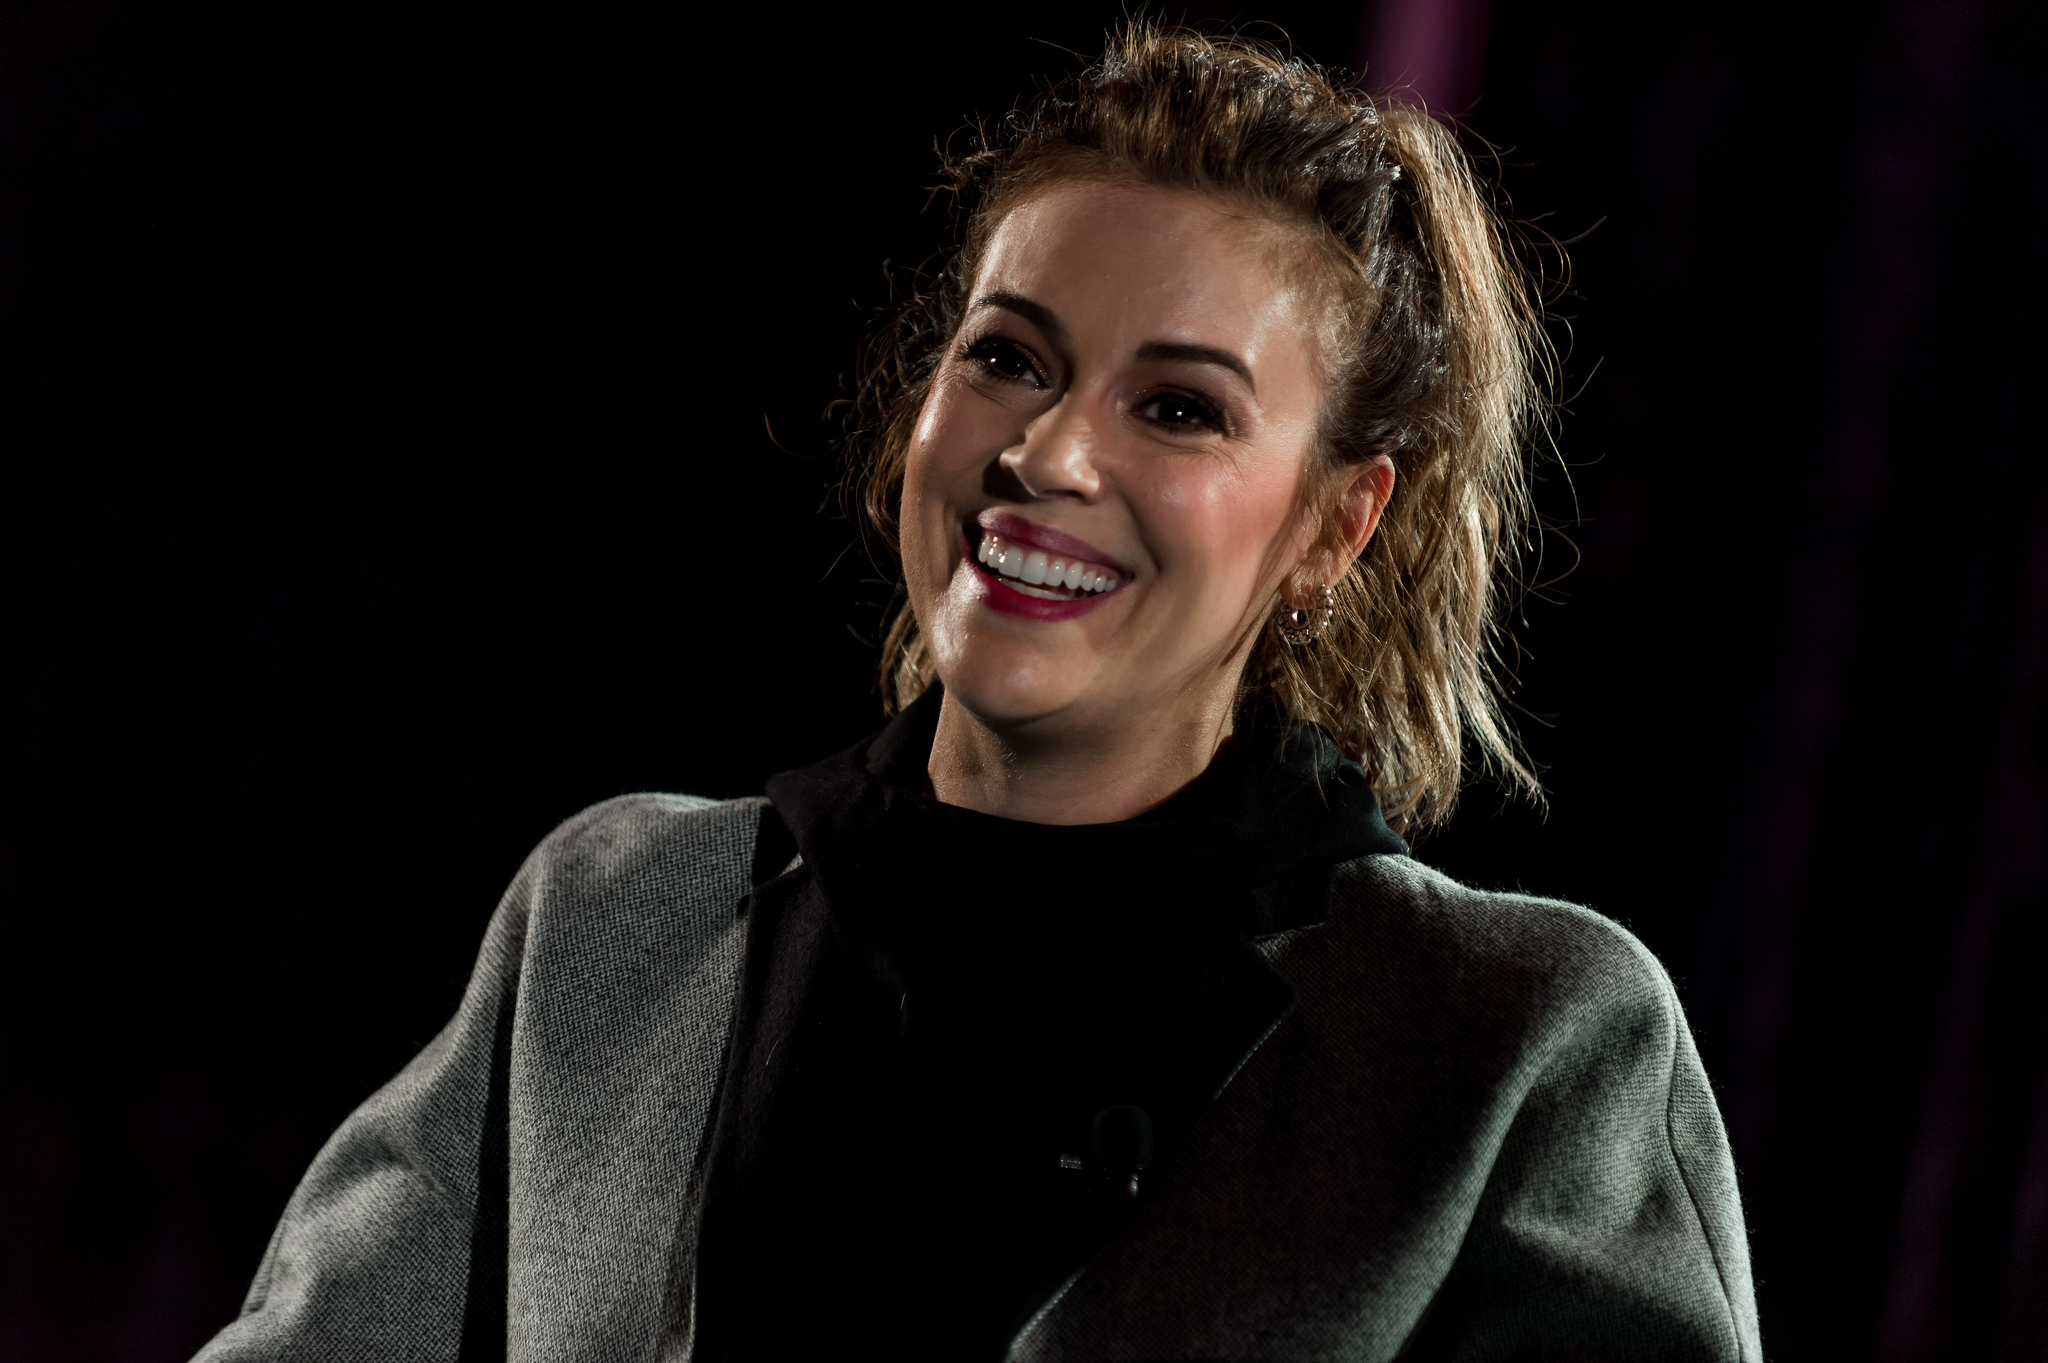 Alyssa Milano, actress, entrepreneur and philanthropist at the Fortune Most Powerful Women Next Generation Summit in San Francisco, December 1st